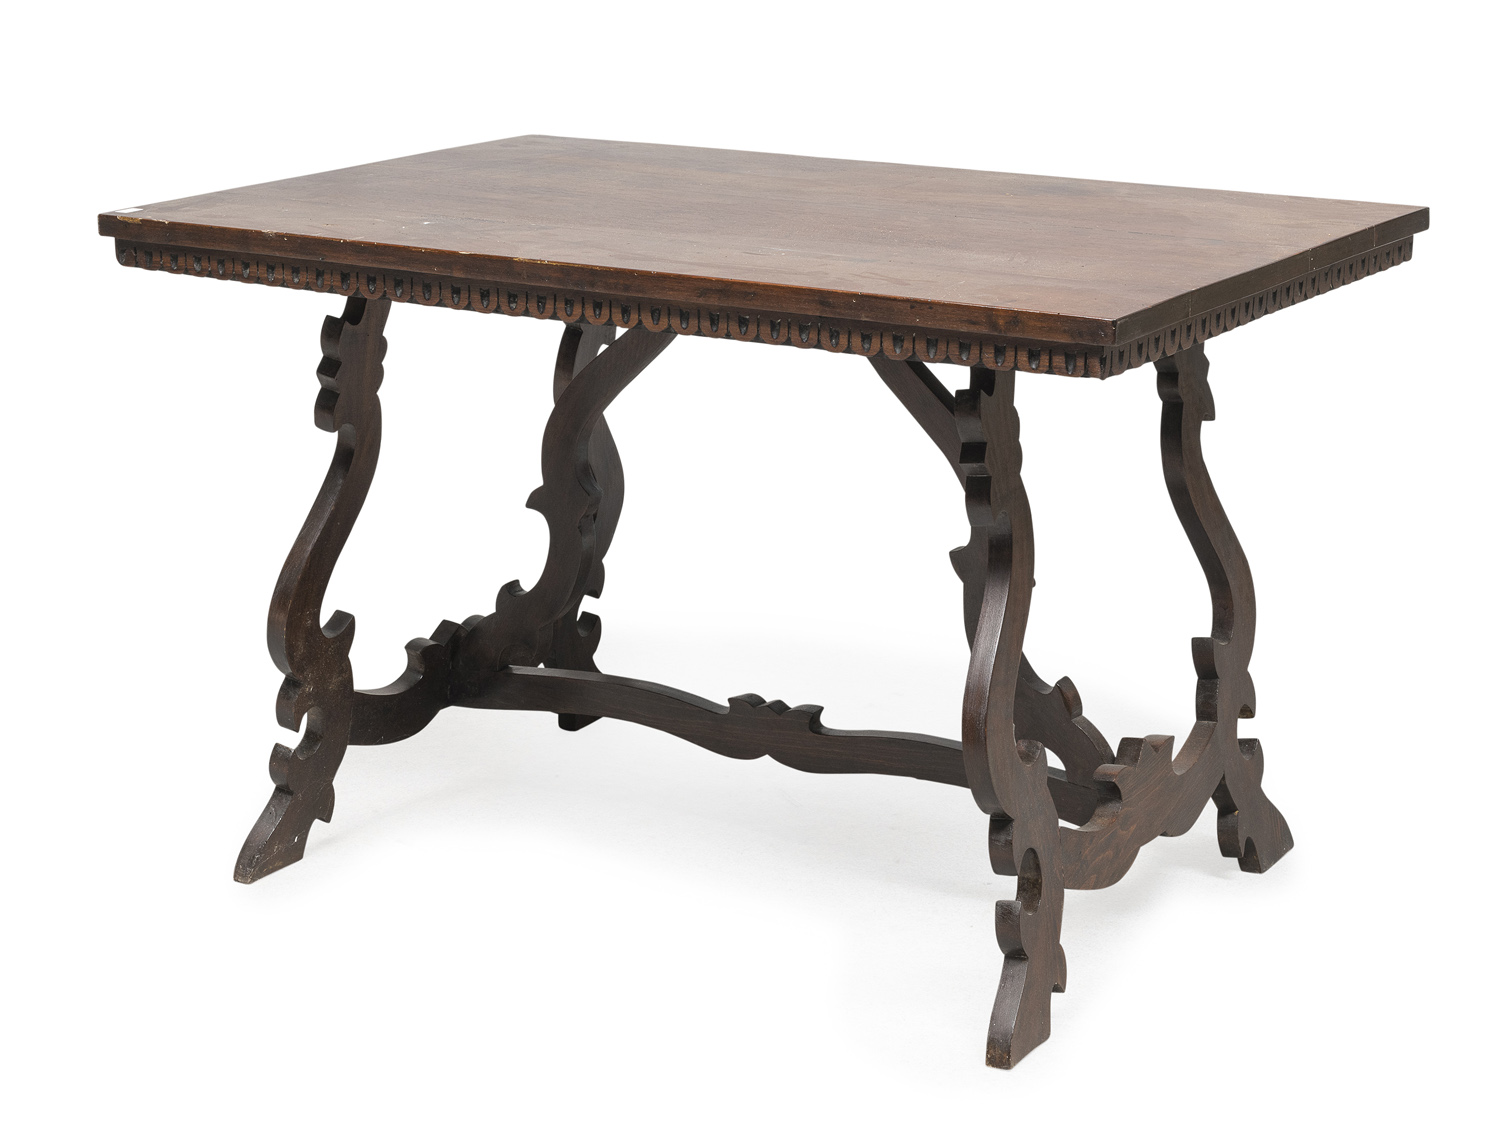 DROP-LEAF TABLE EIGHTEENTH CENTURY STYLE EARLY 20TH CENTURY